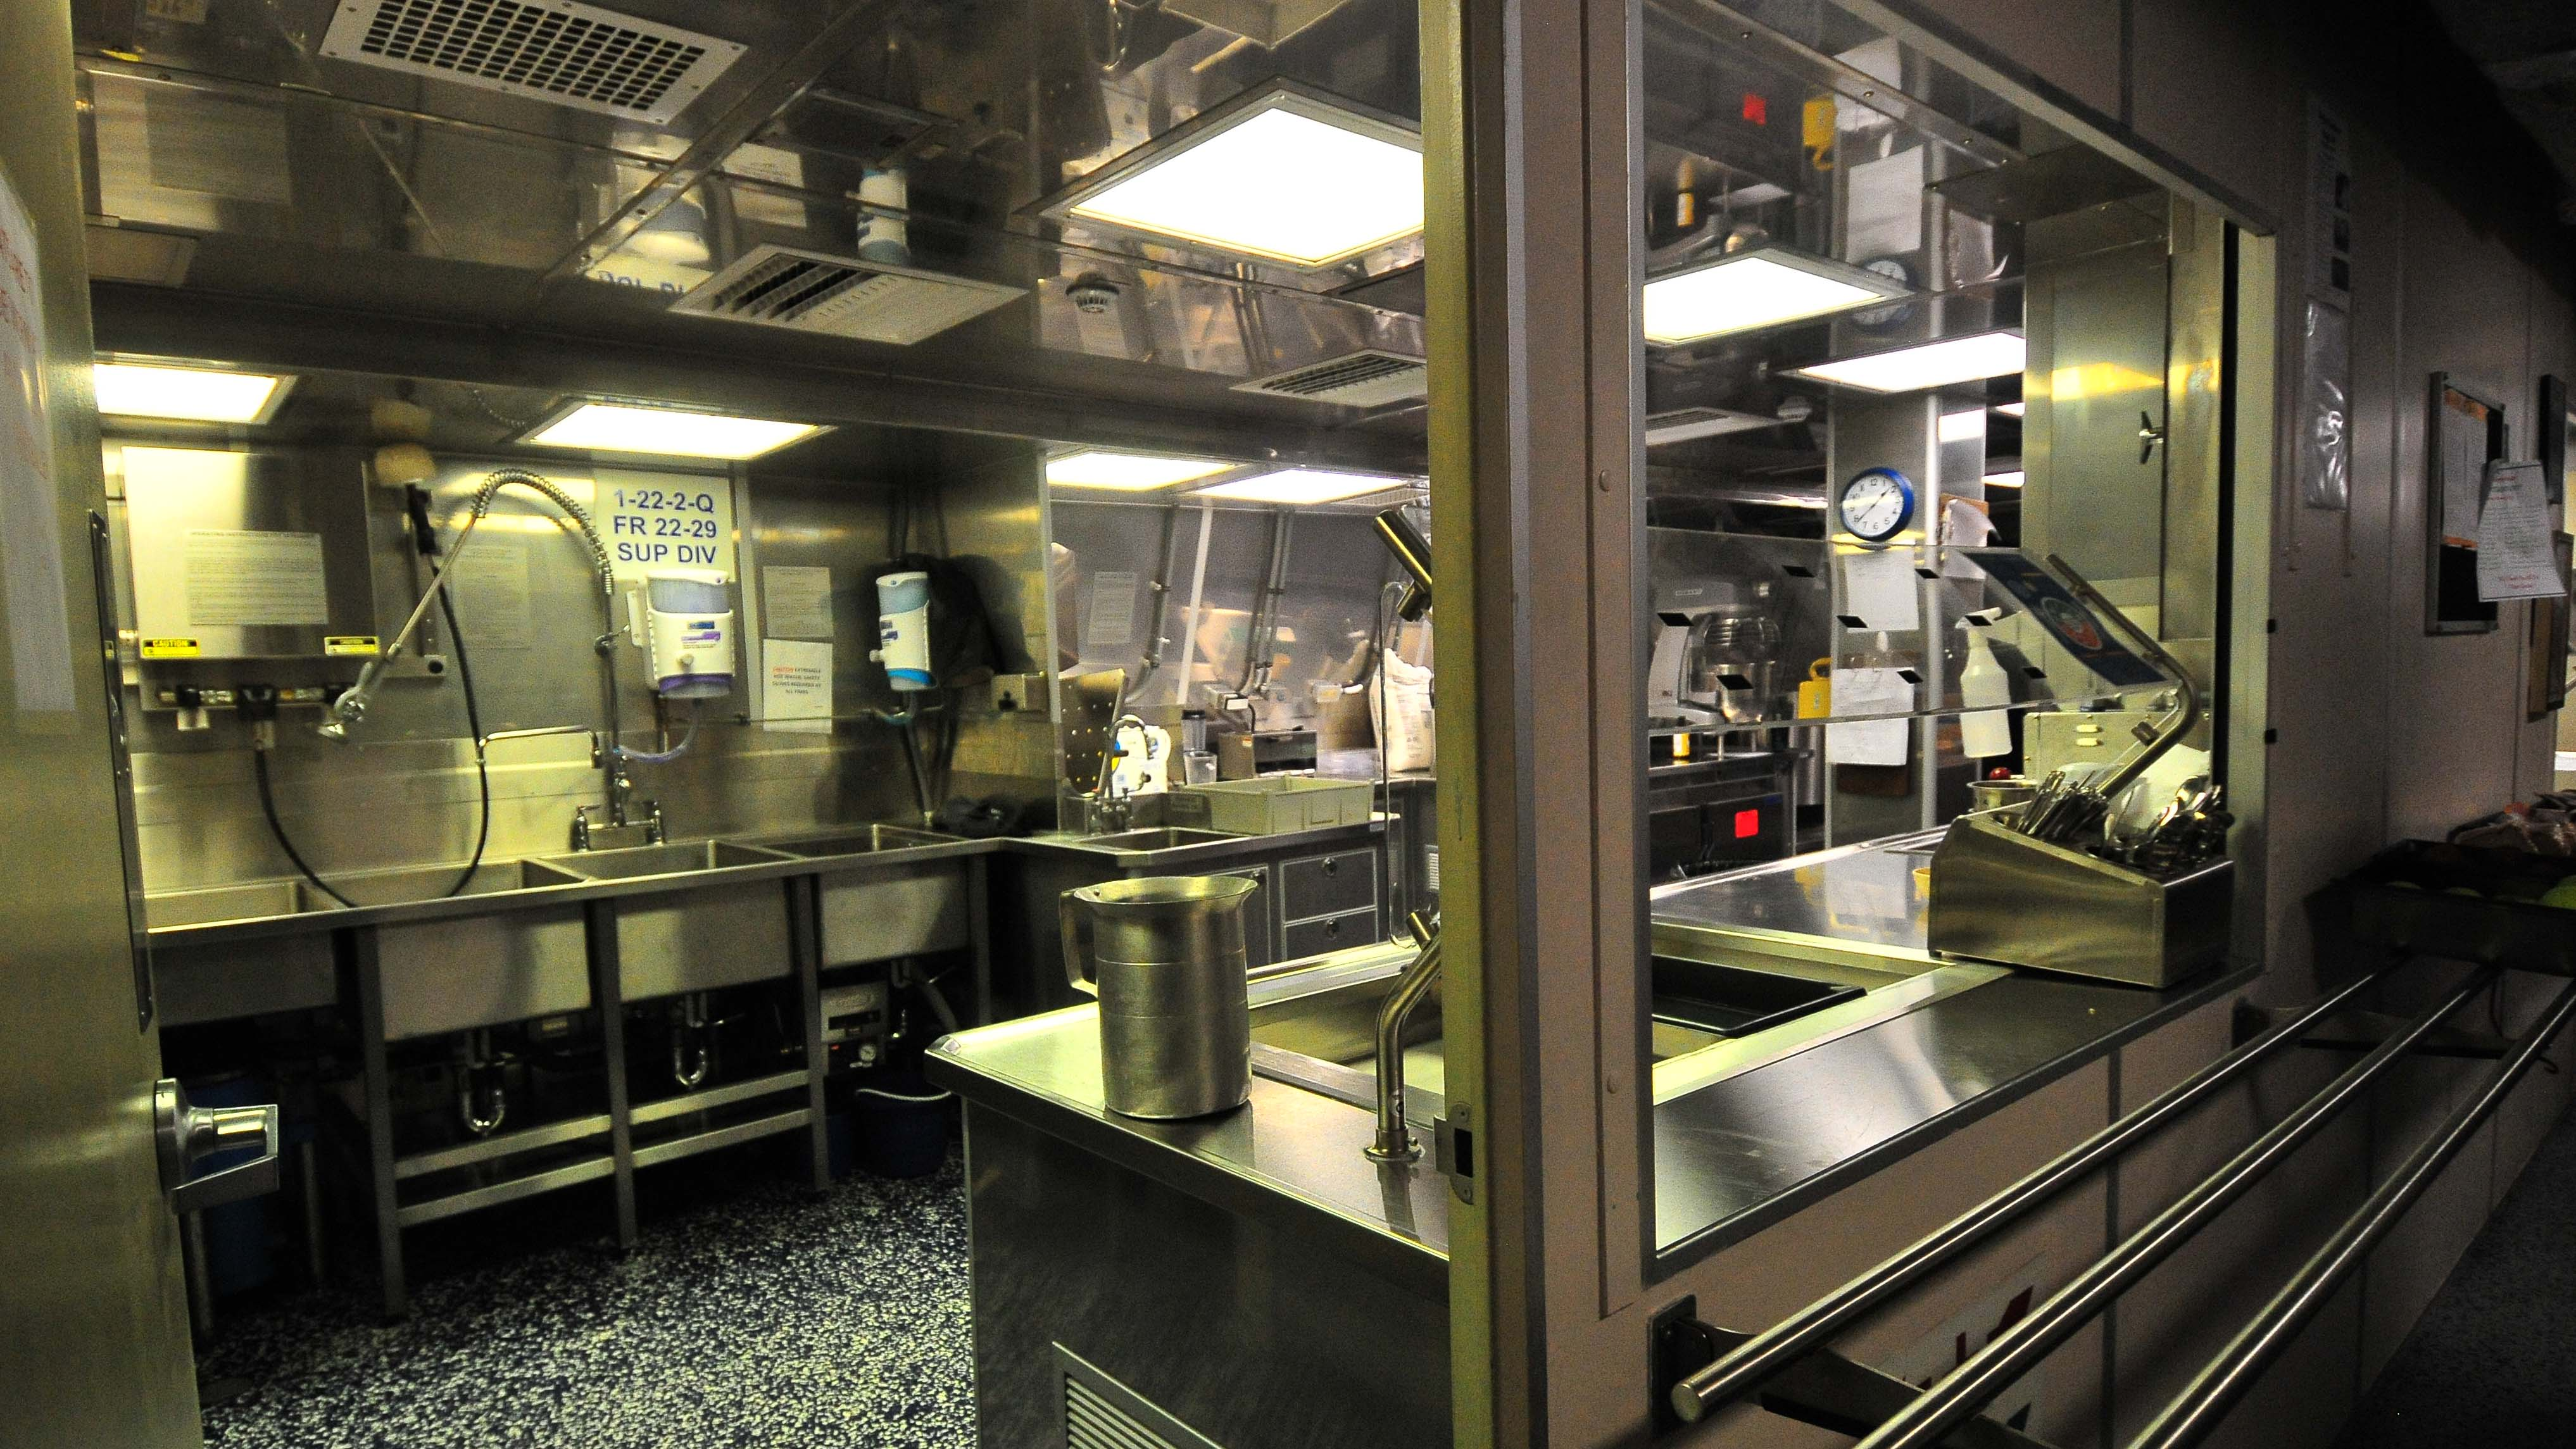 The kitchen of the USS Omaha is ready for hungry sailors.